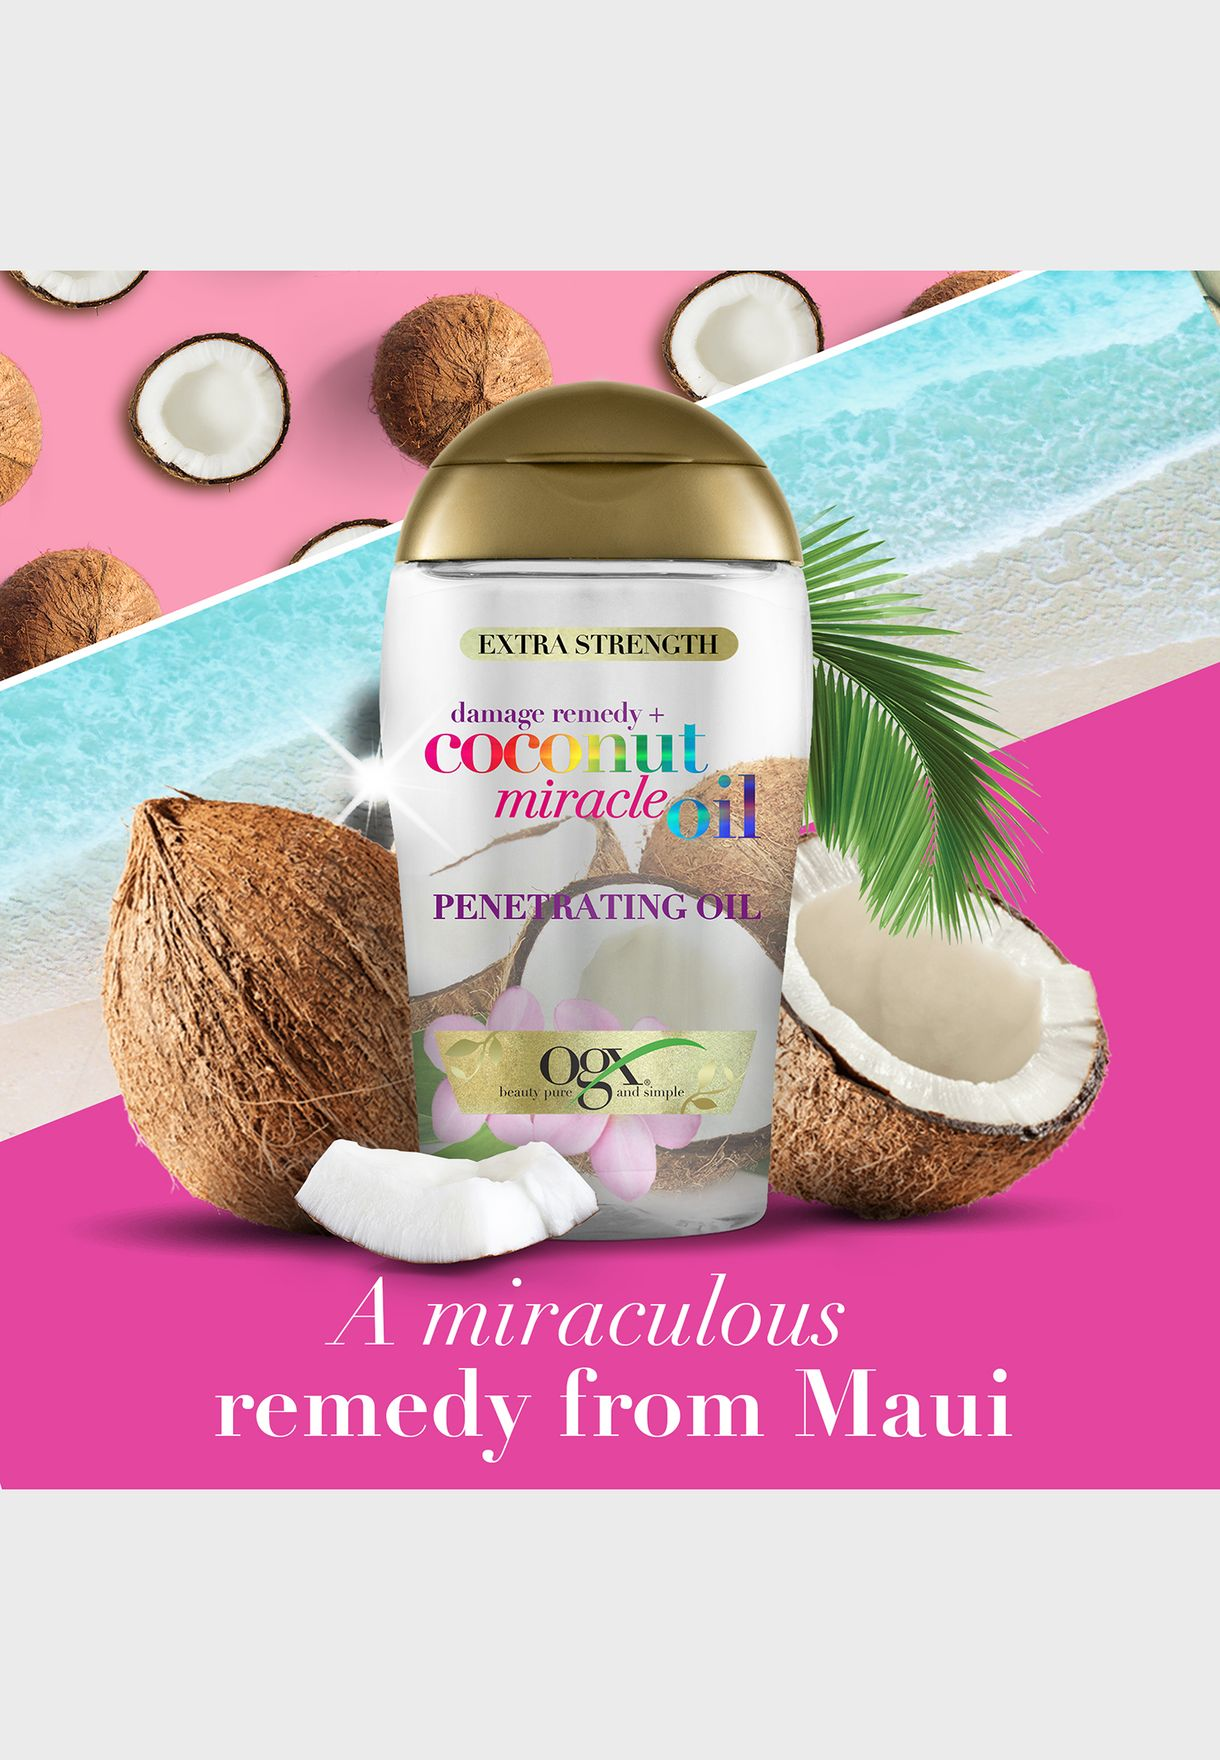 Damage Remedy+ Coconut Miracle Hair Oil 100ml